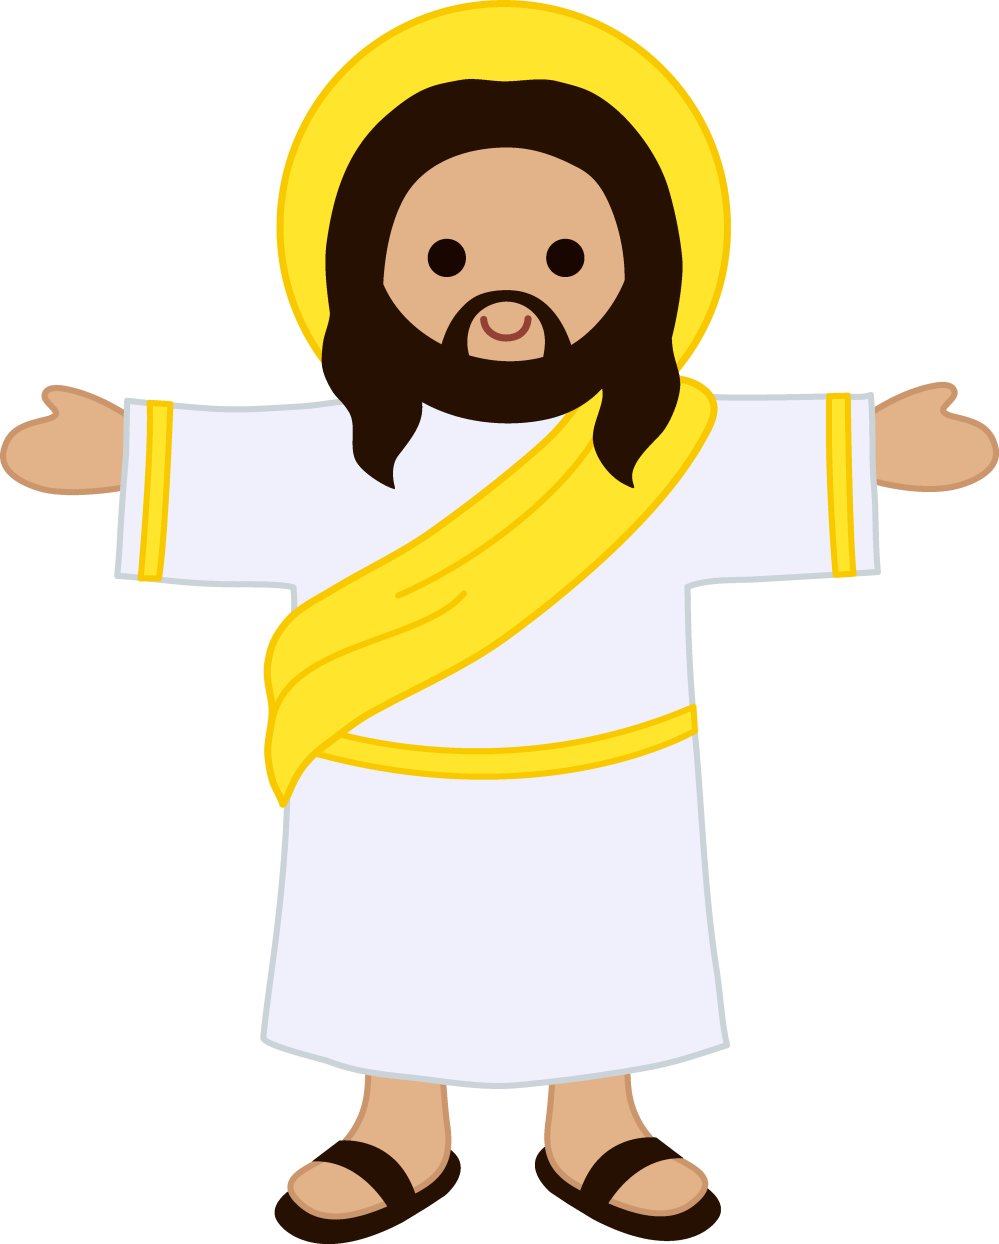 medium resolution of free to use public domain jesus christ clip art